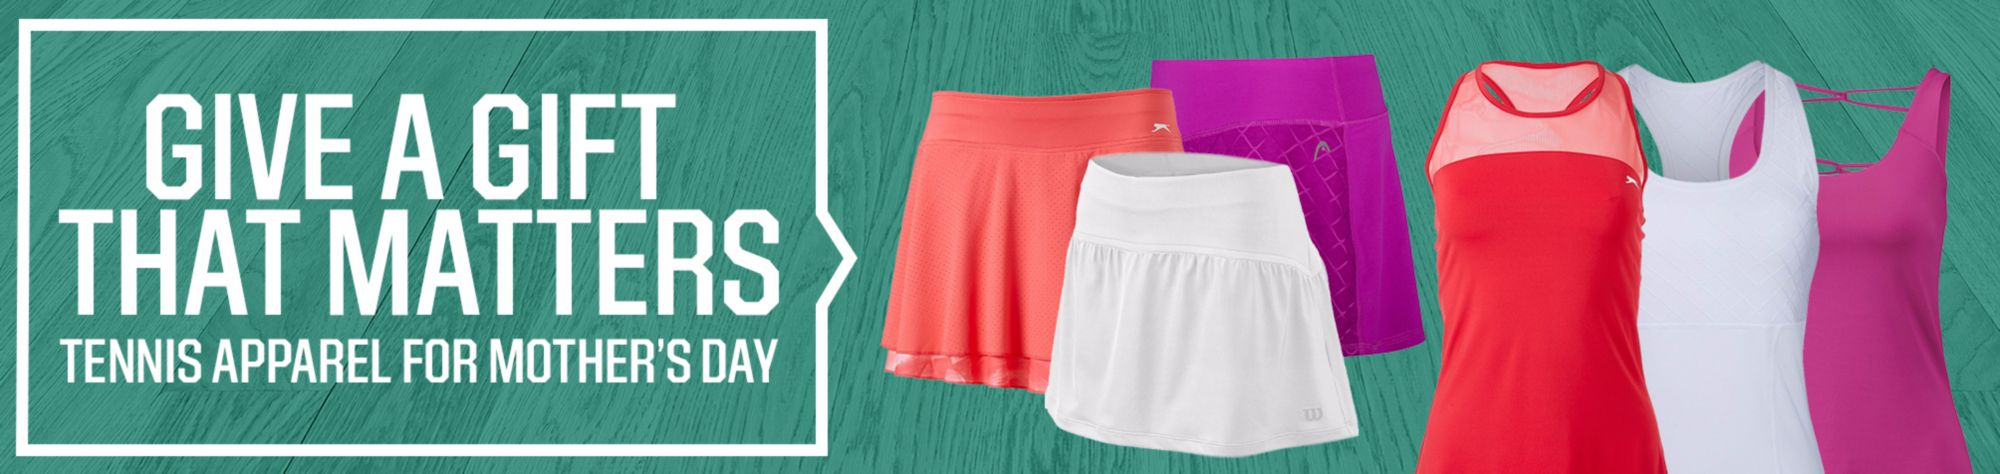 Shop Mother's Day Tennis Apparel